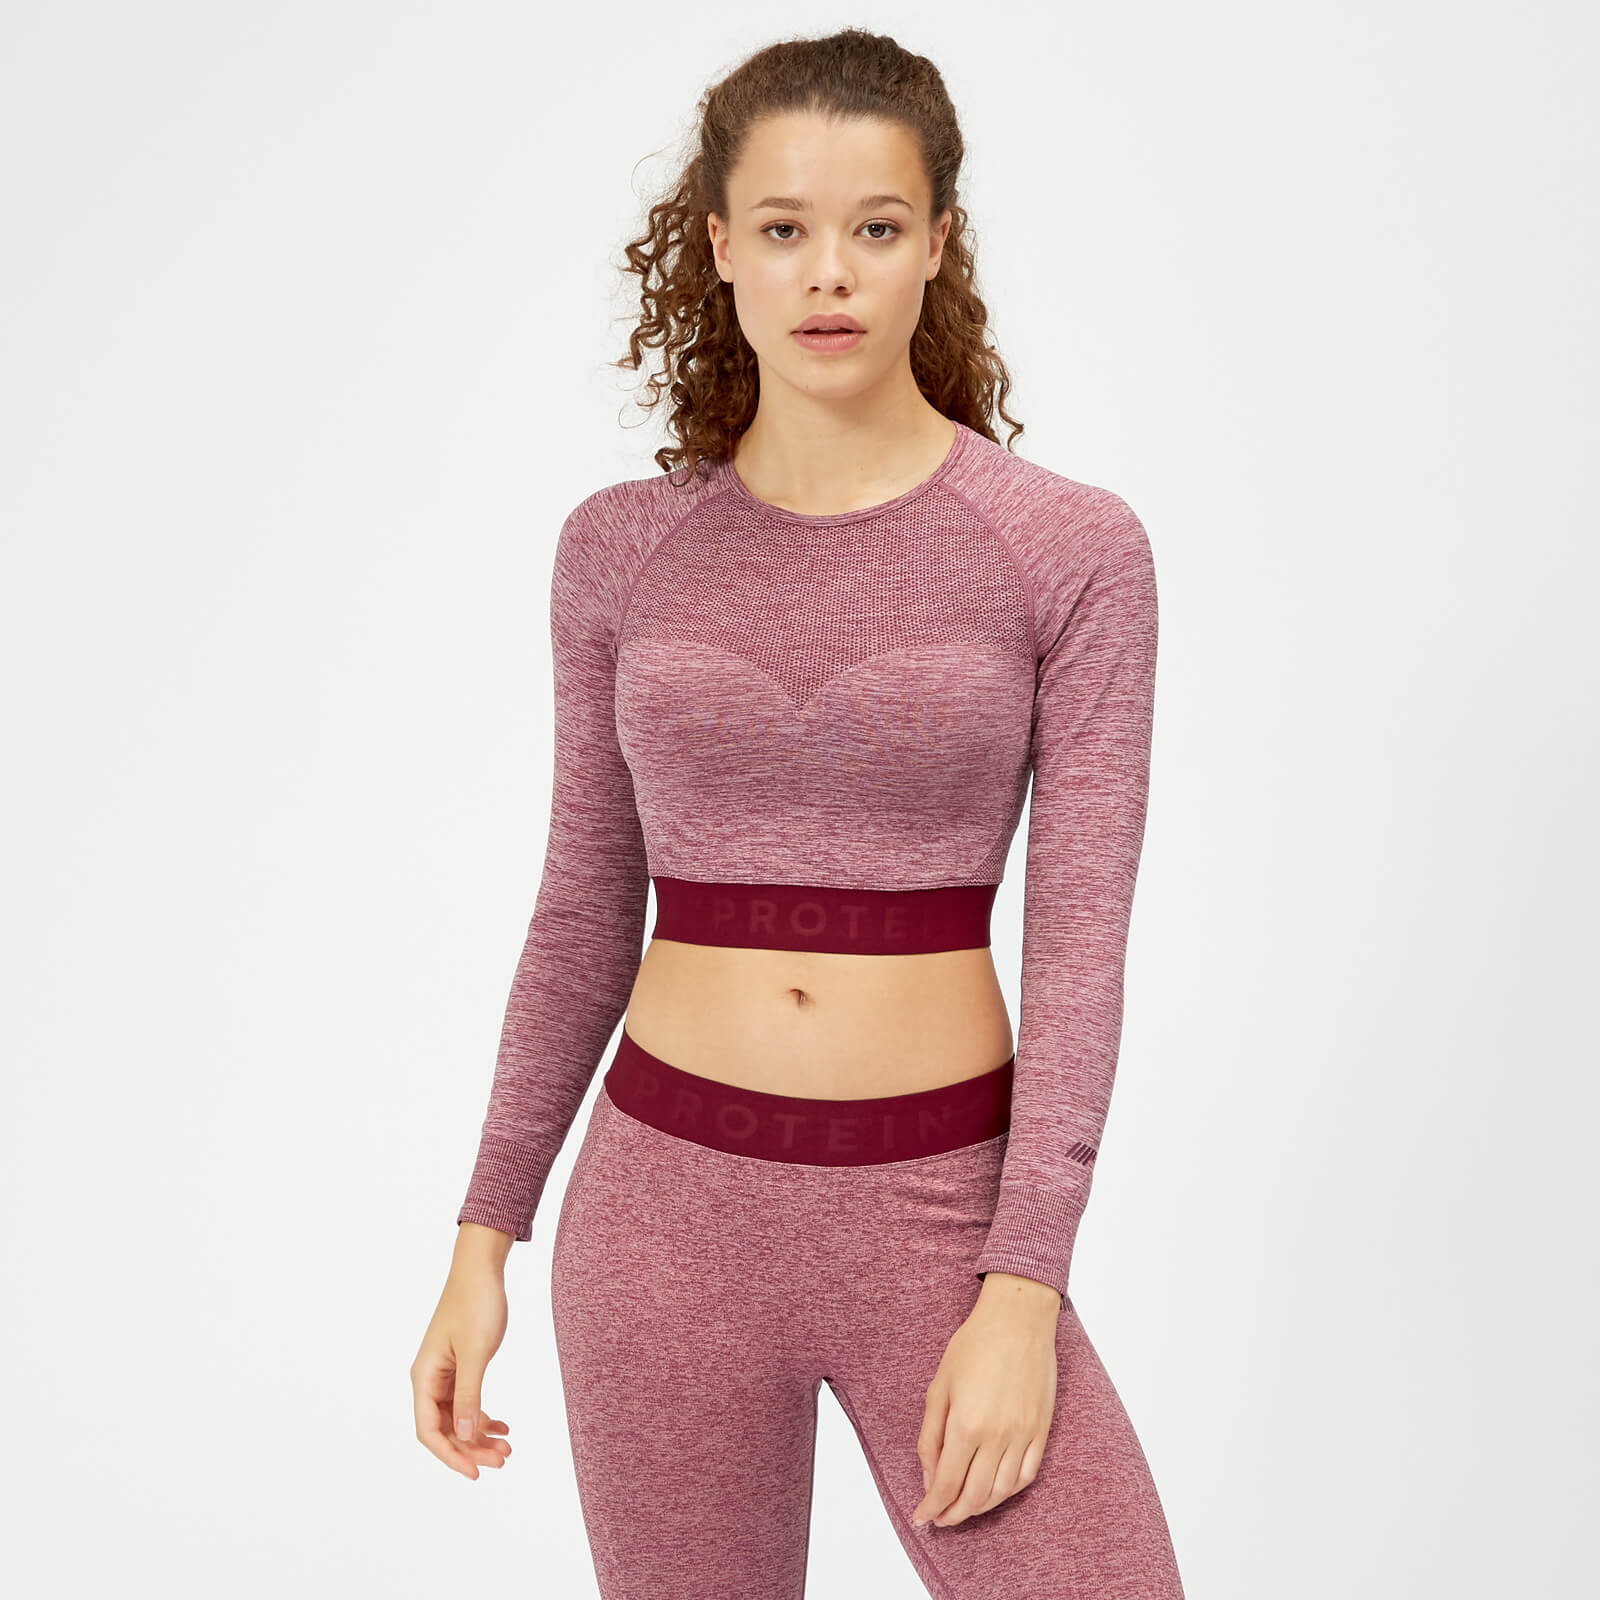 eb29573f5b8a8b ... Myprotein Inspire Seamless Crop Top - Dusty Rose - XS - Dusty Rose